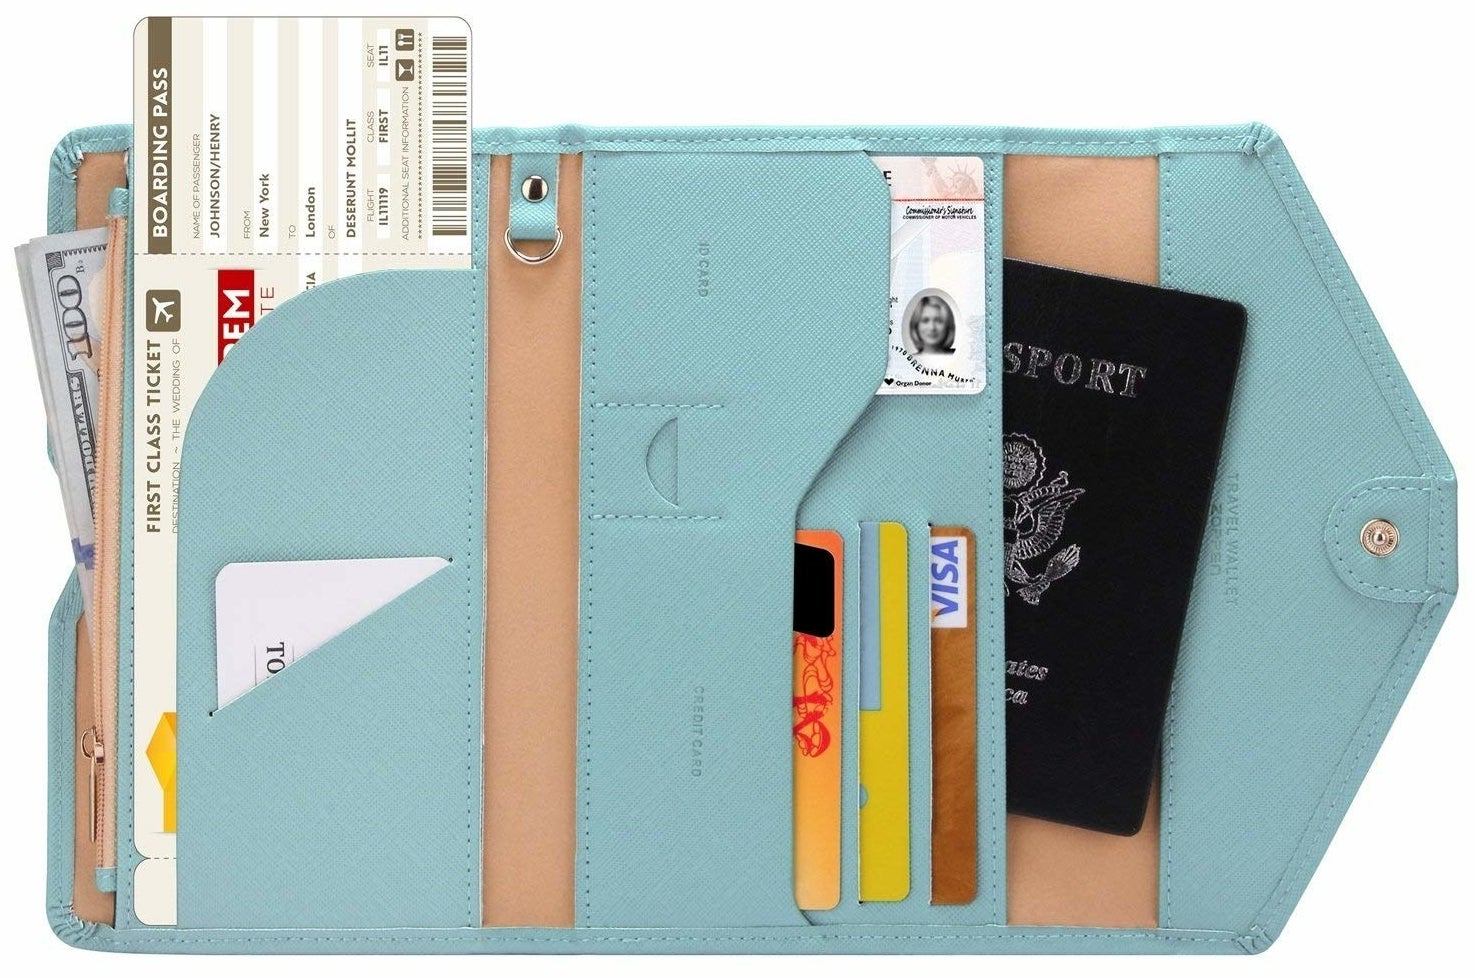 wallet holding cards, passport, and tickets